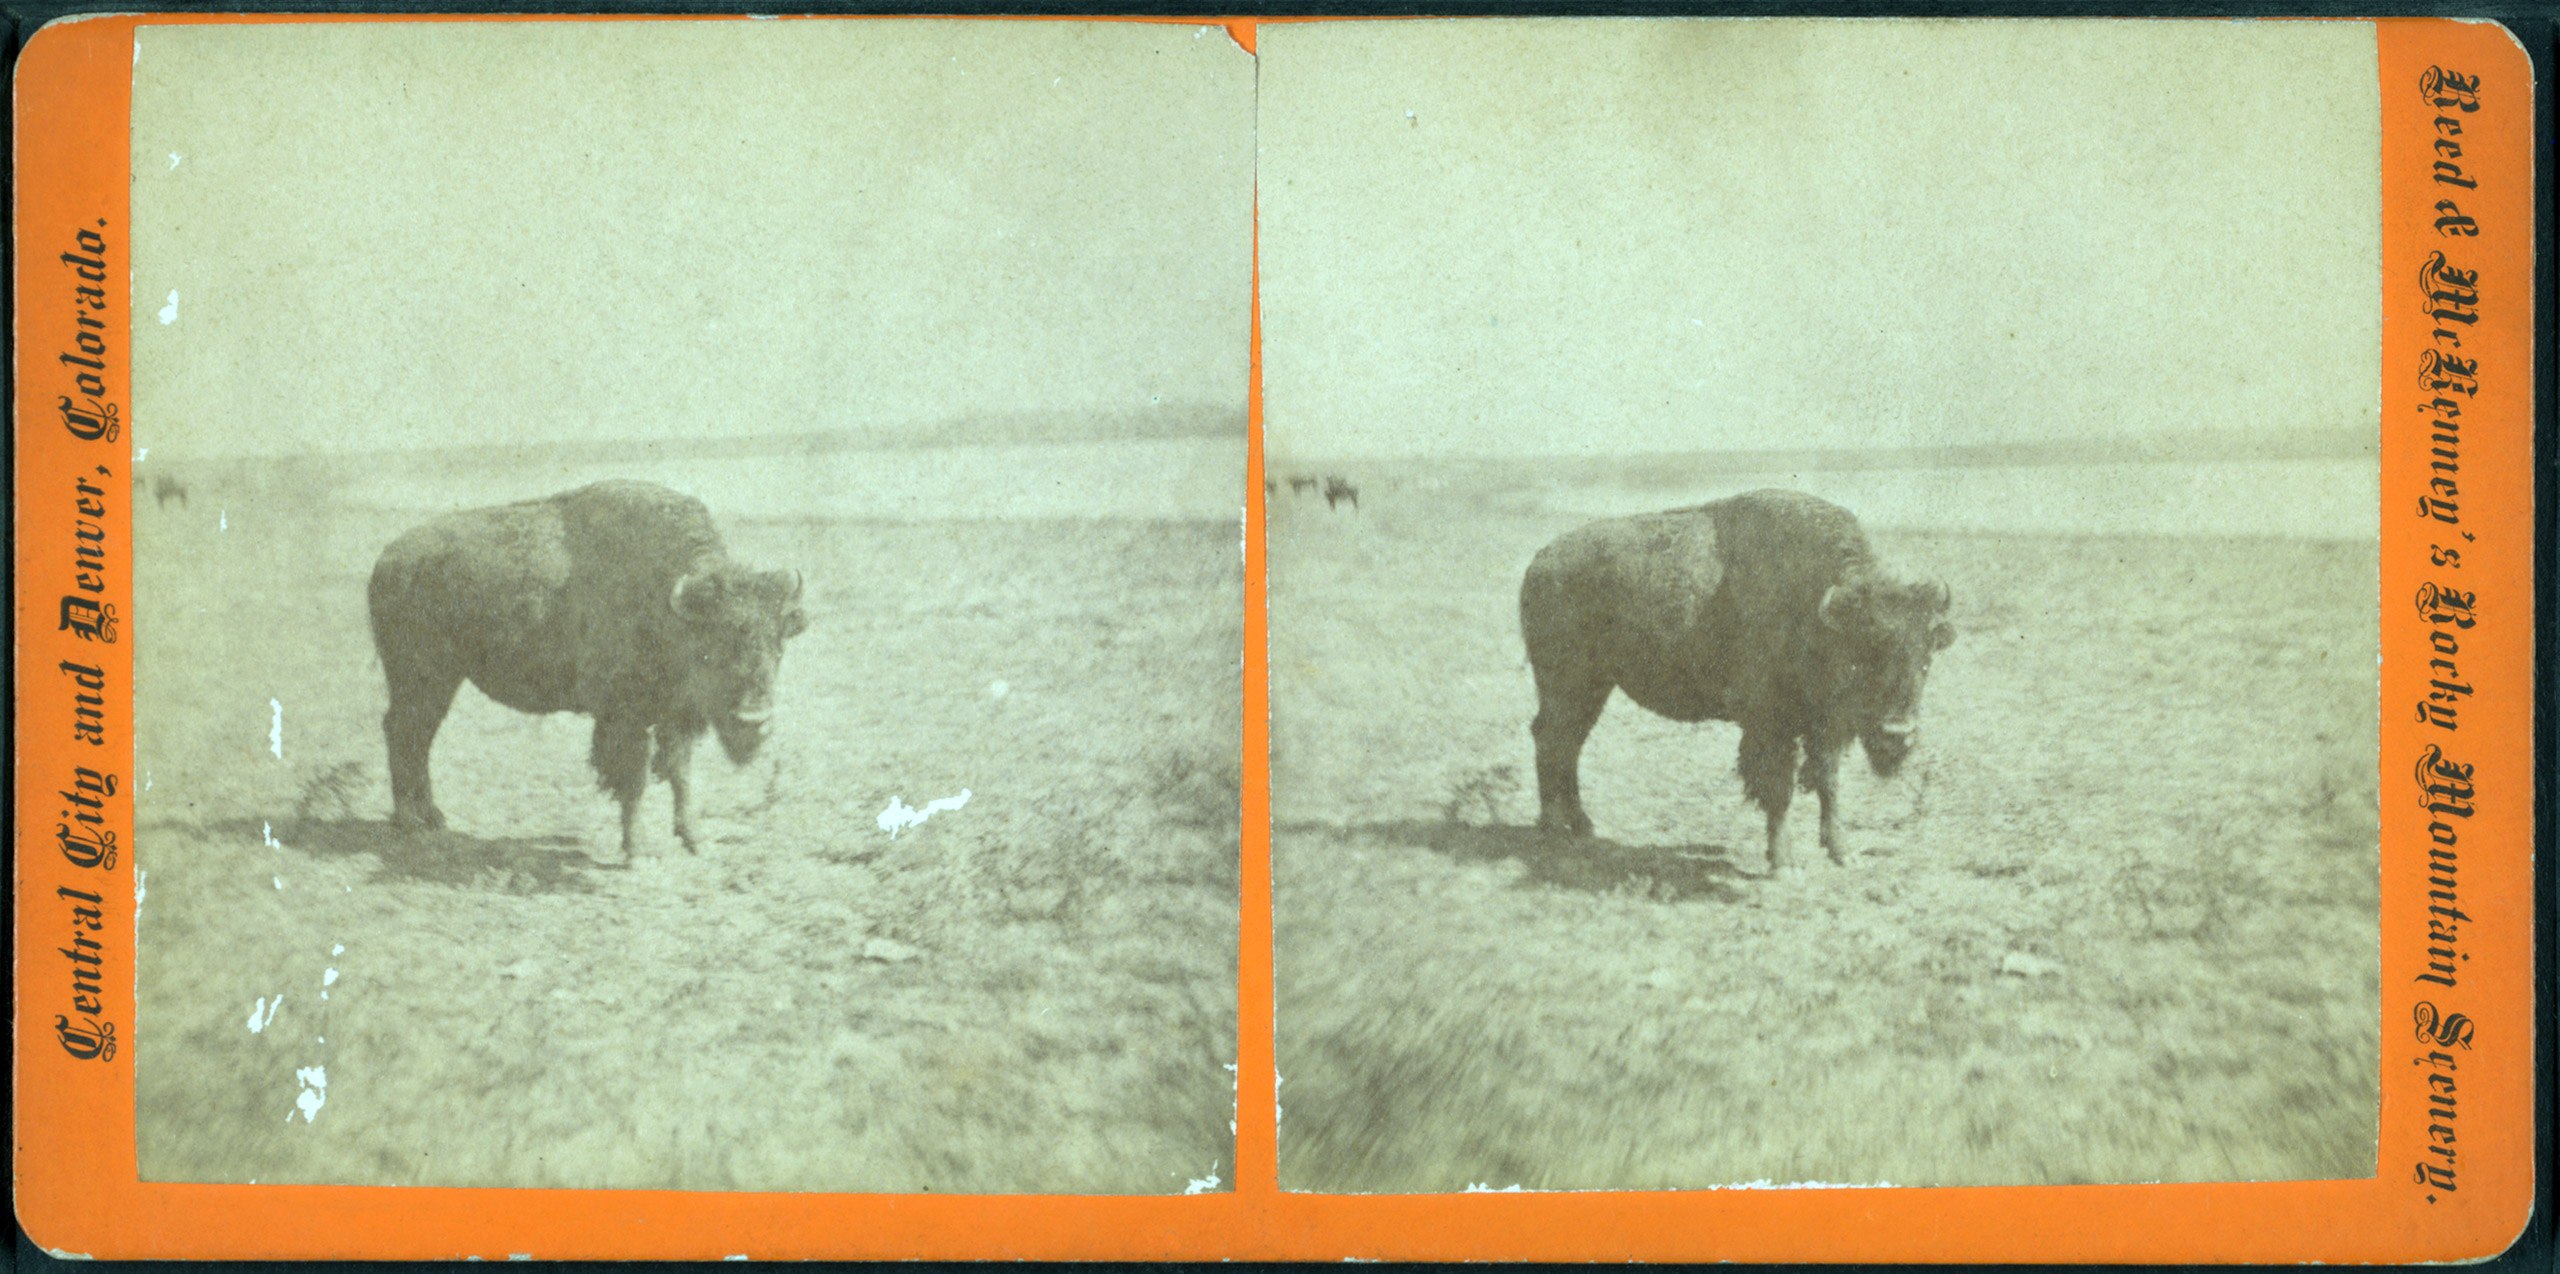 Stereoscopic view of a Bison. Circa 1875.